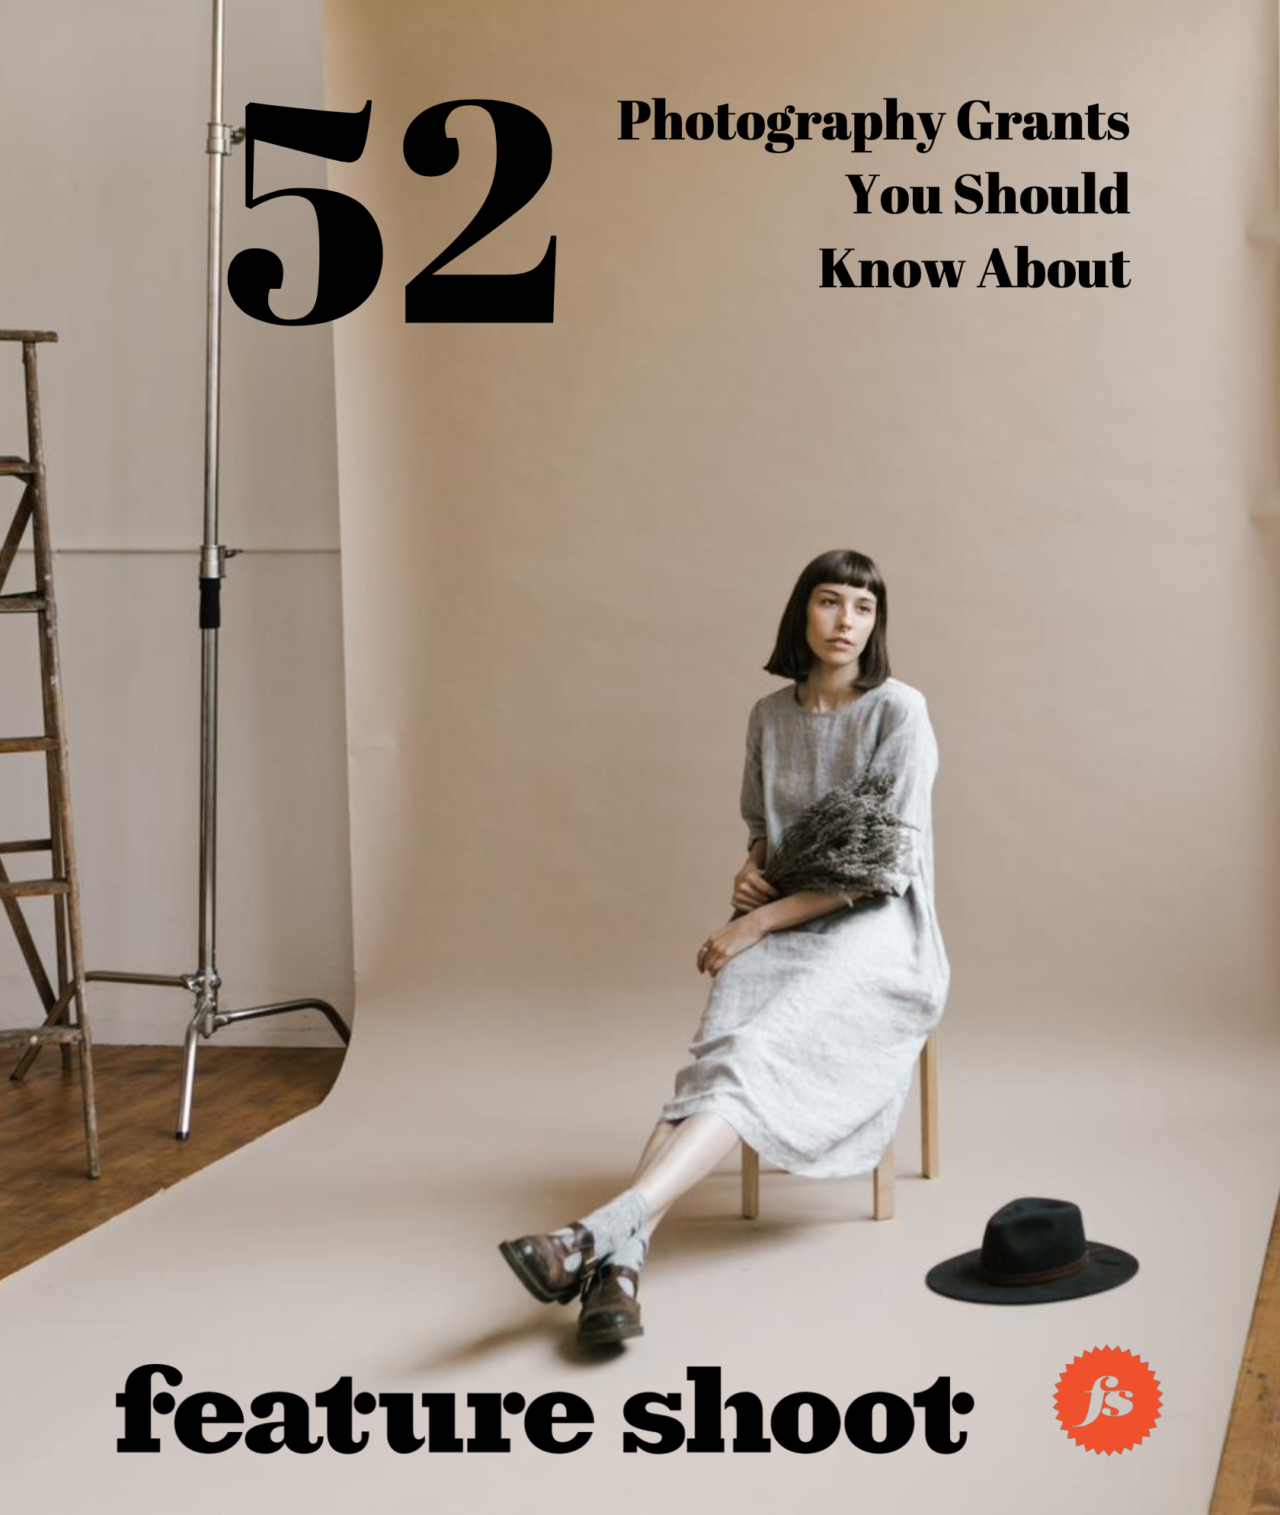 New Guide! 52 Photography Grants You Should Know About - Feature Shoot